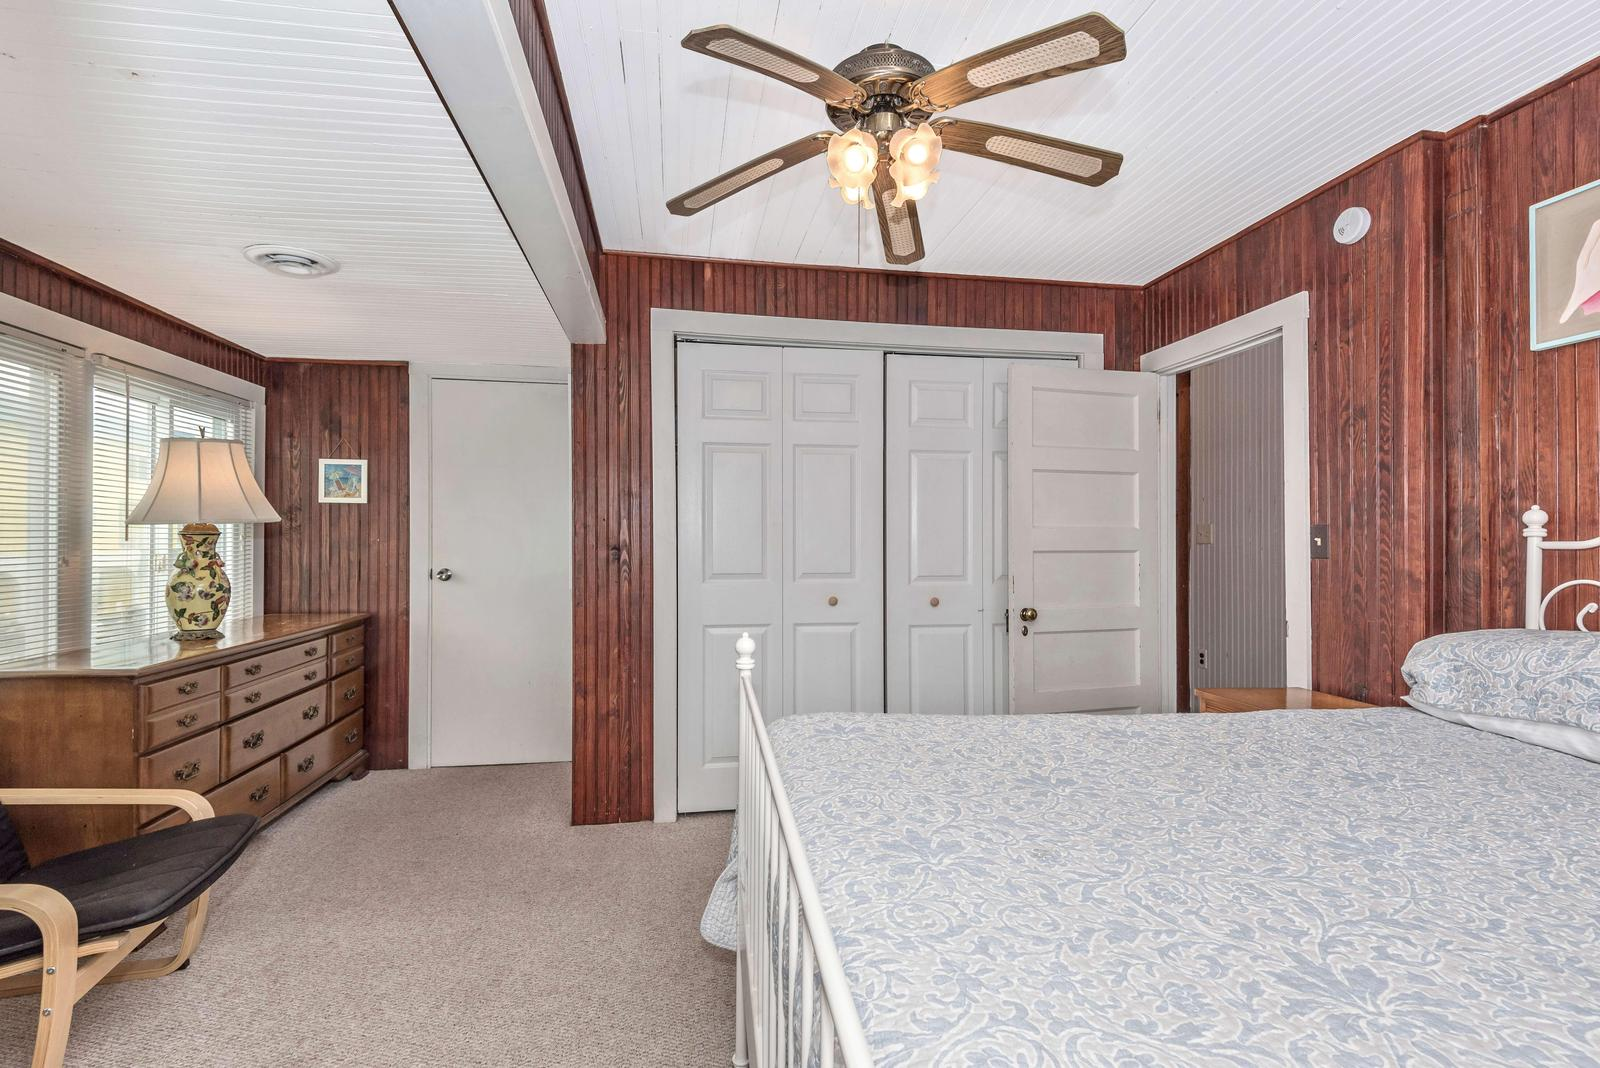 Upstairs Master bedroom with Full bath